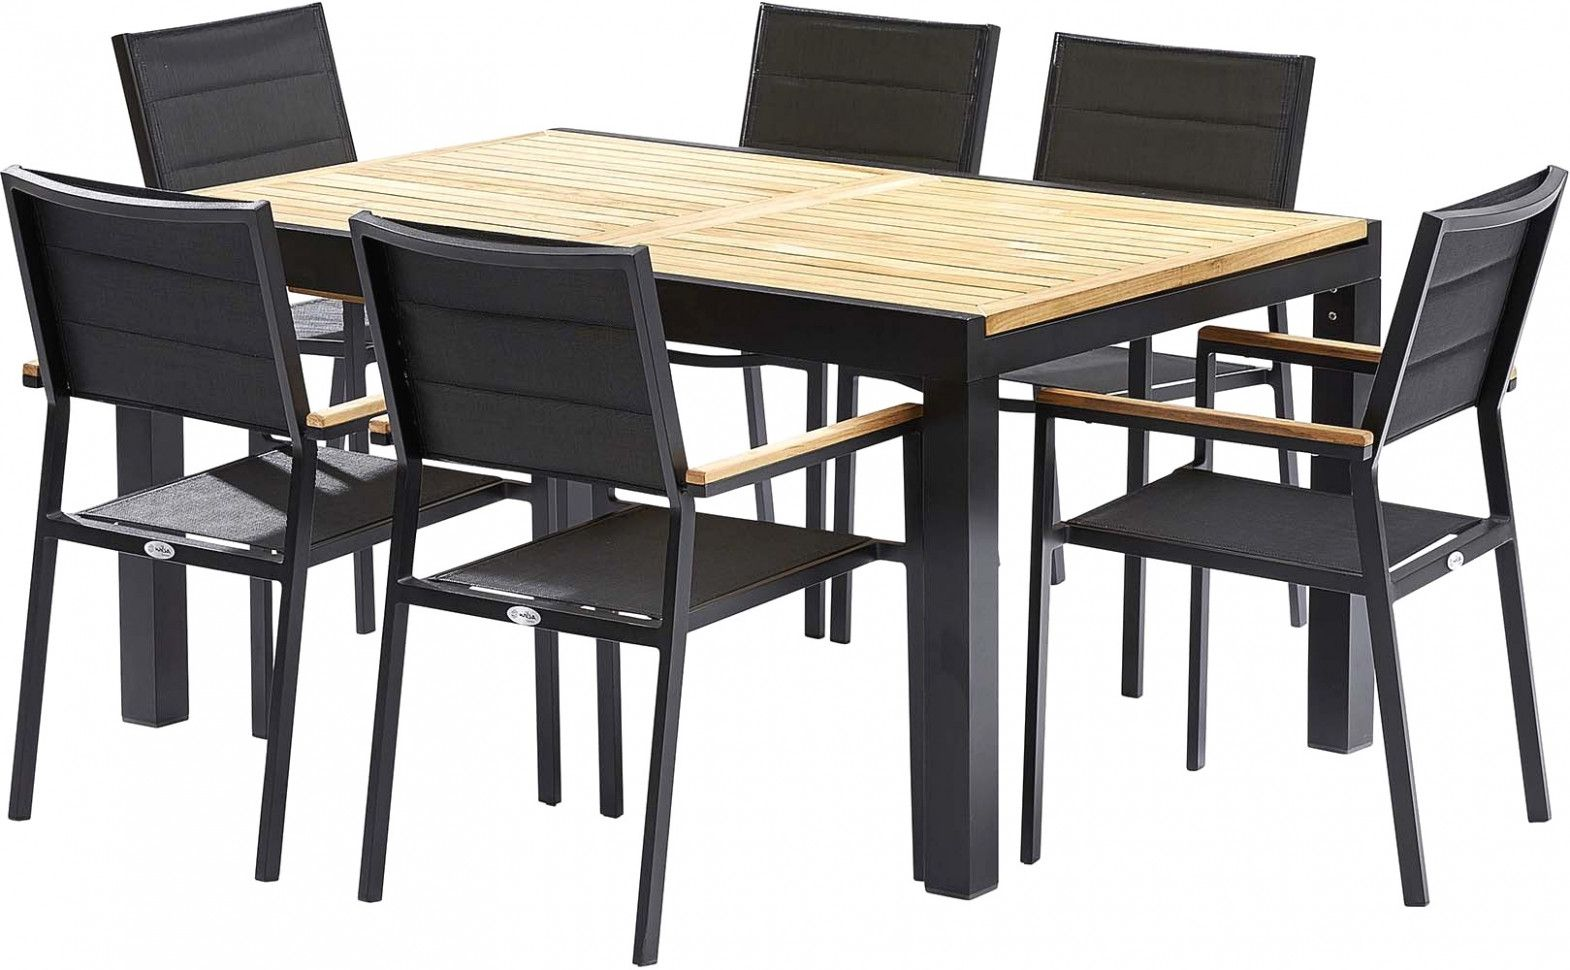 Table De Jardin Bricorama Issu D Une Famille Modeste Jean Claude Bourrelier Voit Le Jour Le 16 Aout 1946 A Saint Calais Table Outdoor Furniture Sets Bar Table